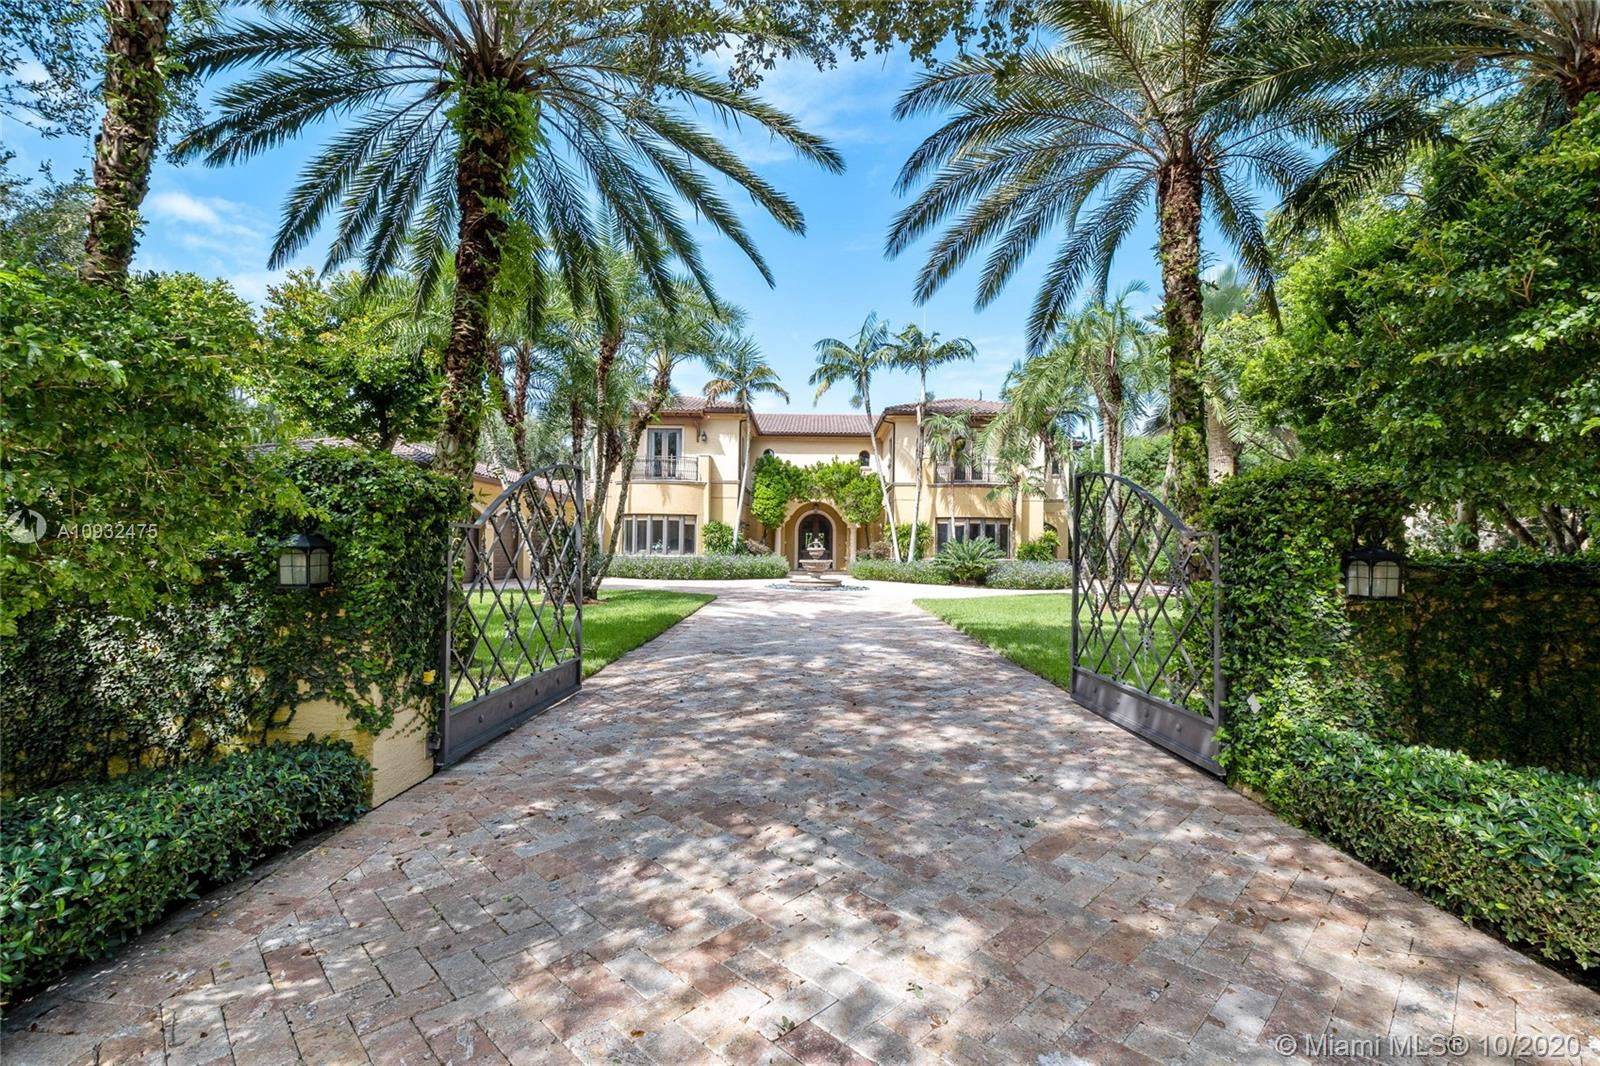 Opulent, Crestron-powered Smart home on gated acre+ lot in Pinecrest. The expansive layout boasts 7 bdrms/ 7.5 baths, grand foyer, stately archways, formal dining rm w/ butler's pantry & custom millwork. Gourmet kitchen w/ 2 islands, Viking & Sub-Zero appliances, built-in coffee maker & large breakfast rm. The regal master suite has adjacent sitting area w/ balcony, & the master spa offers his/her vanities, spa-jet tub & built-in makeup vanity. Impact glass windows frame incredible views of the grounds w/ 2 covered terraces, bullt-in bar, large pool w/ spa & outdoor grill. Added conveniences include 1st & 2nd-floor laundry rms, additional covered drive w/ access to the kitchen & 3-car garage. Be the next to own this unique & private luxury compound w/ the very best in design & technology.